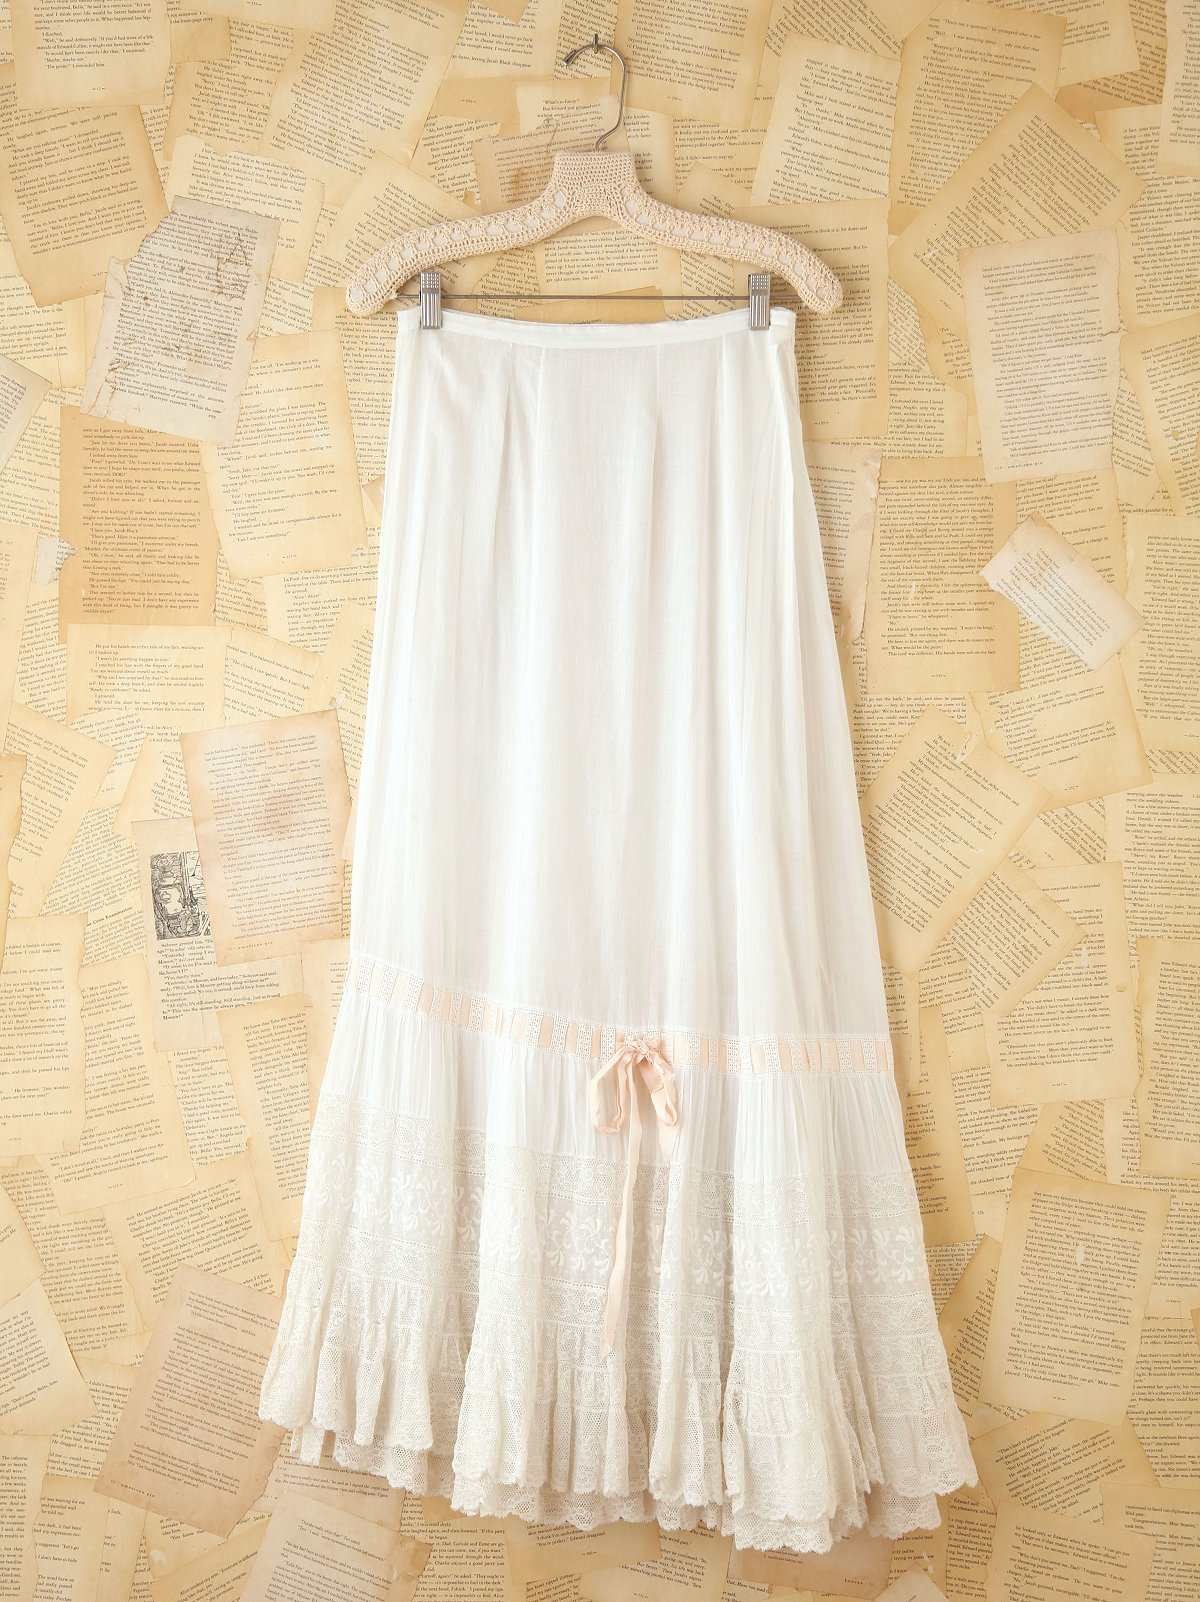 Vintage Long Lace Skirt